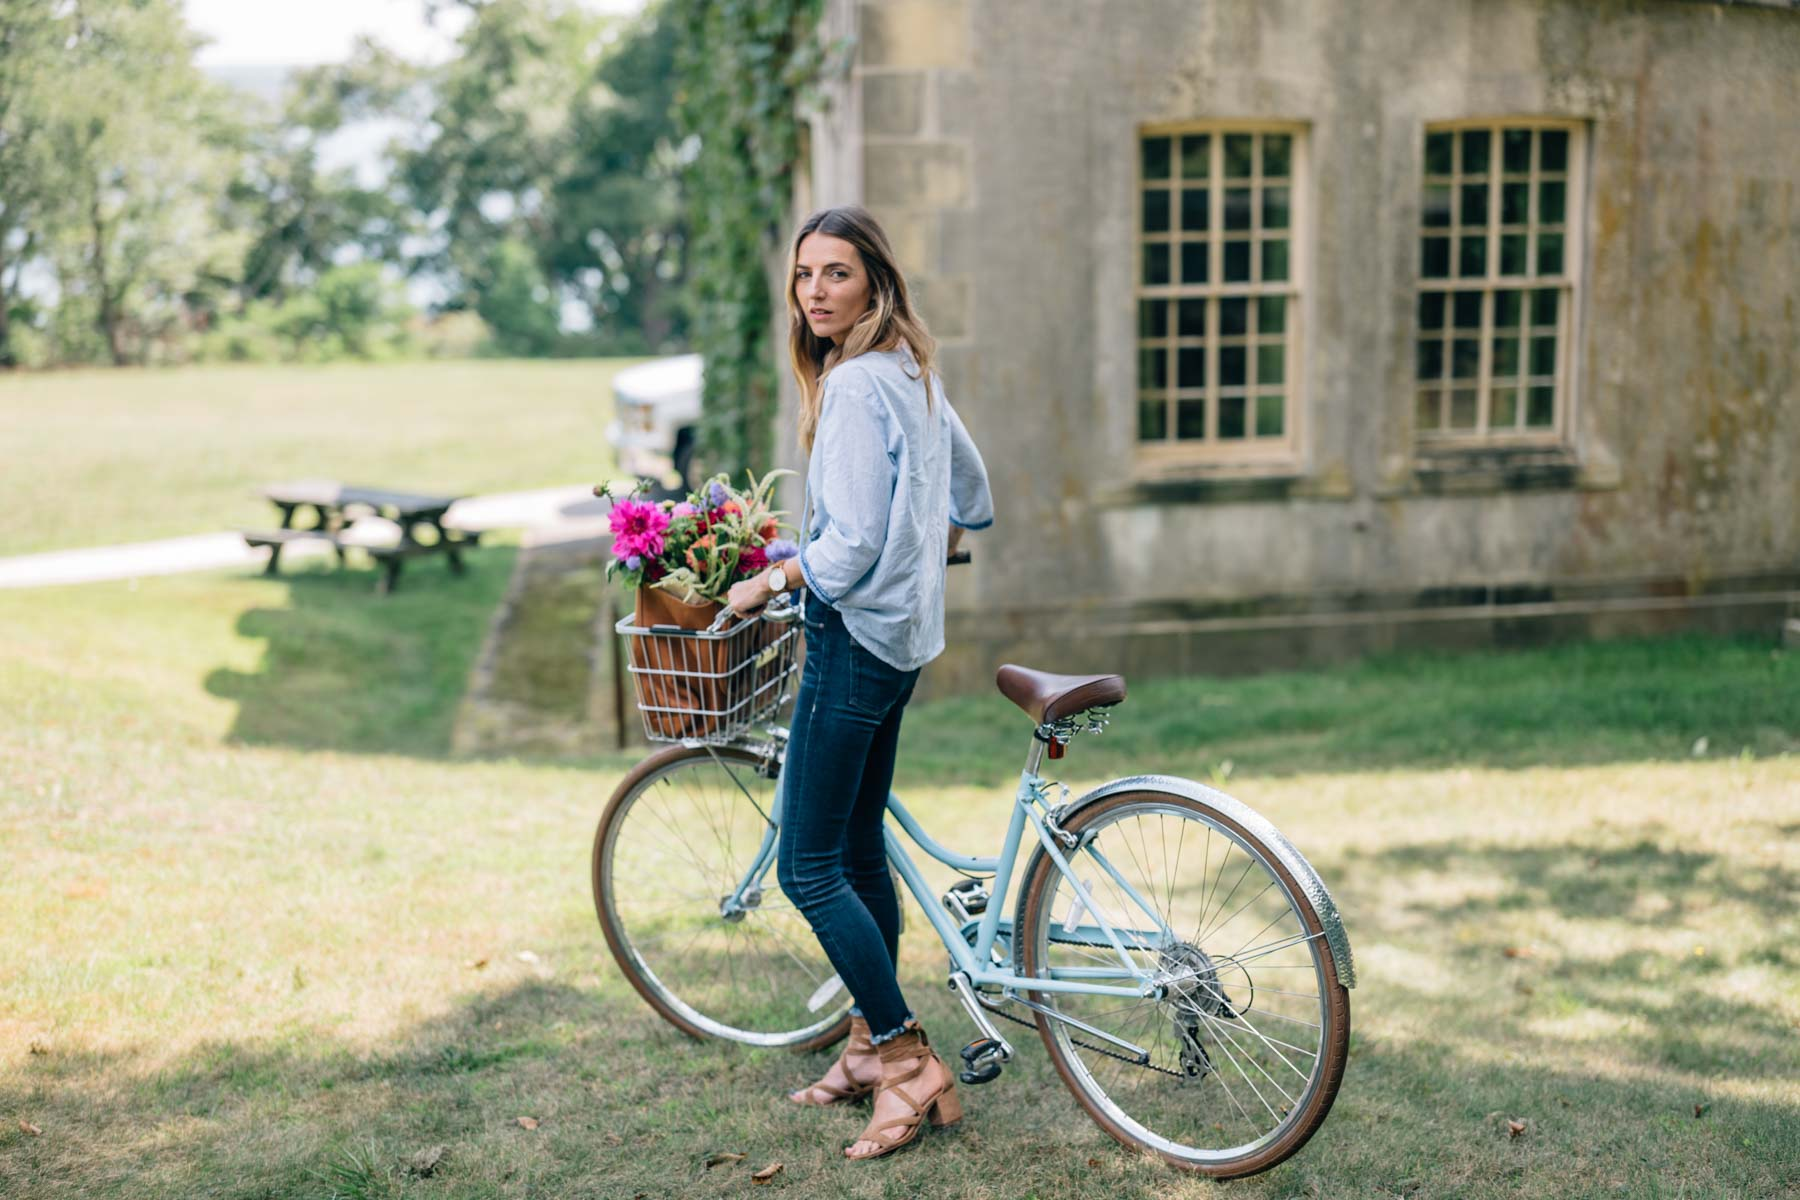 Jess Ann Kirby enjoys Spring in an embroidered blouse and jeans with a bouquet of seasonal flowers